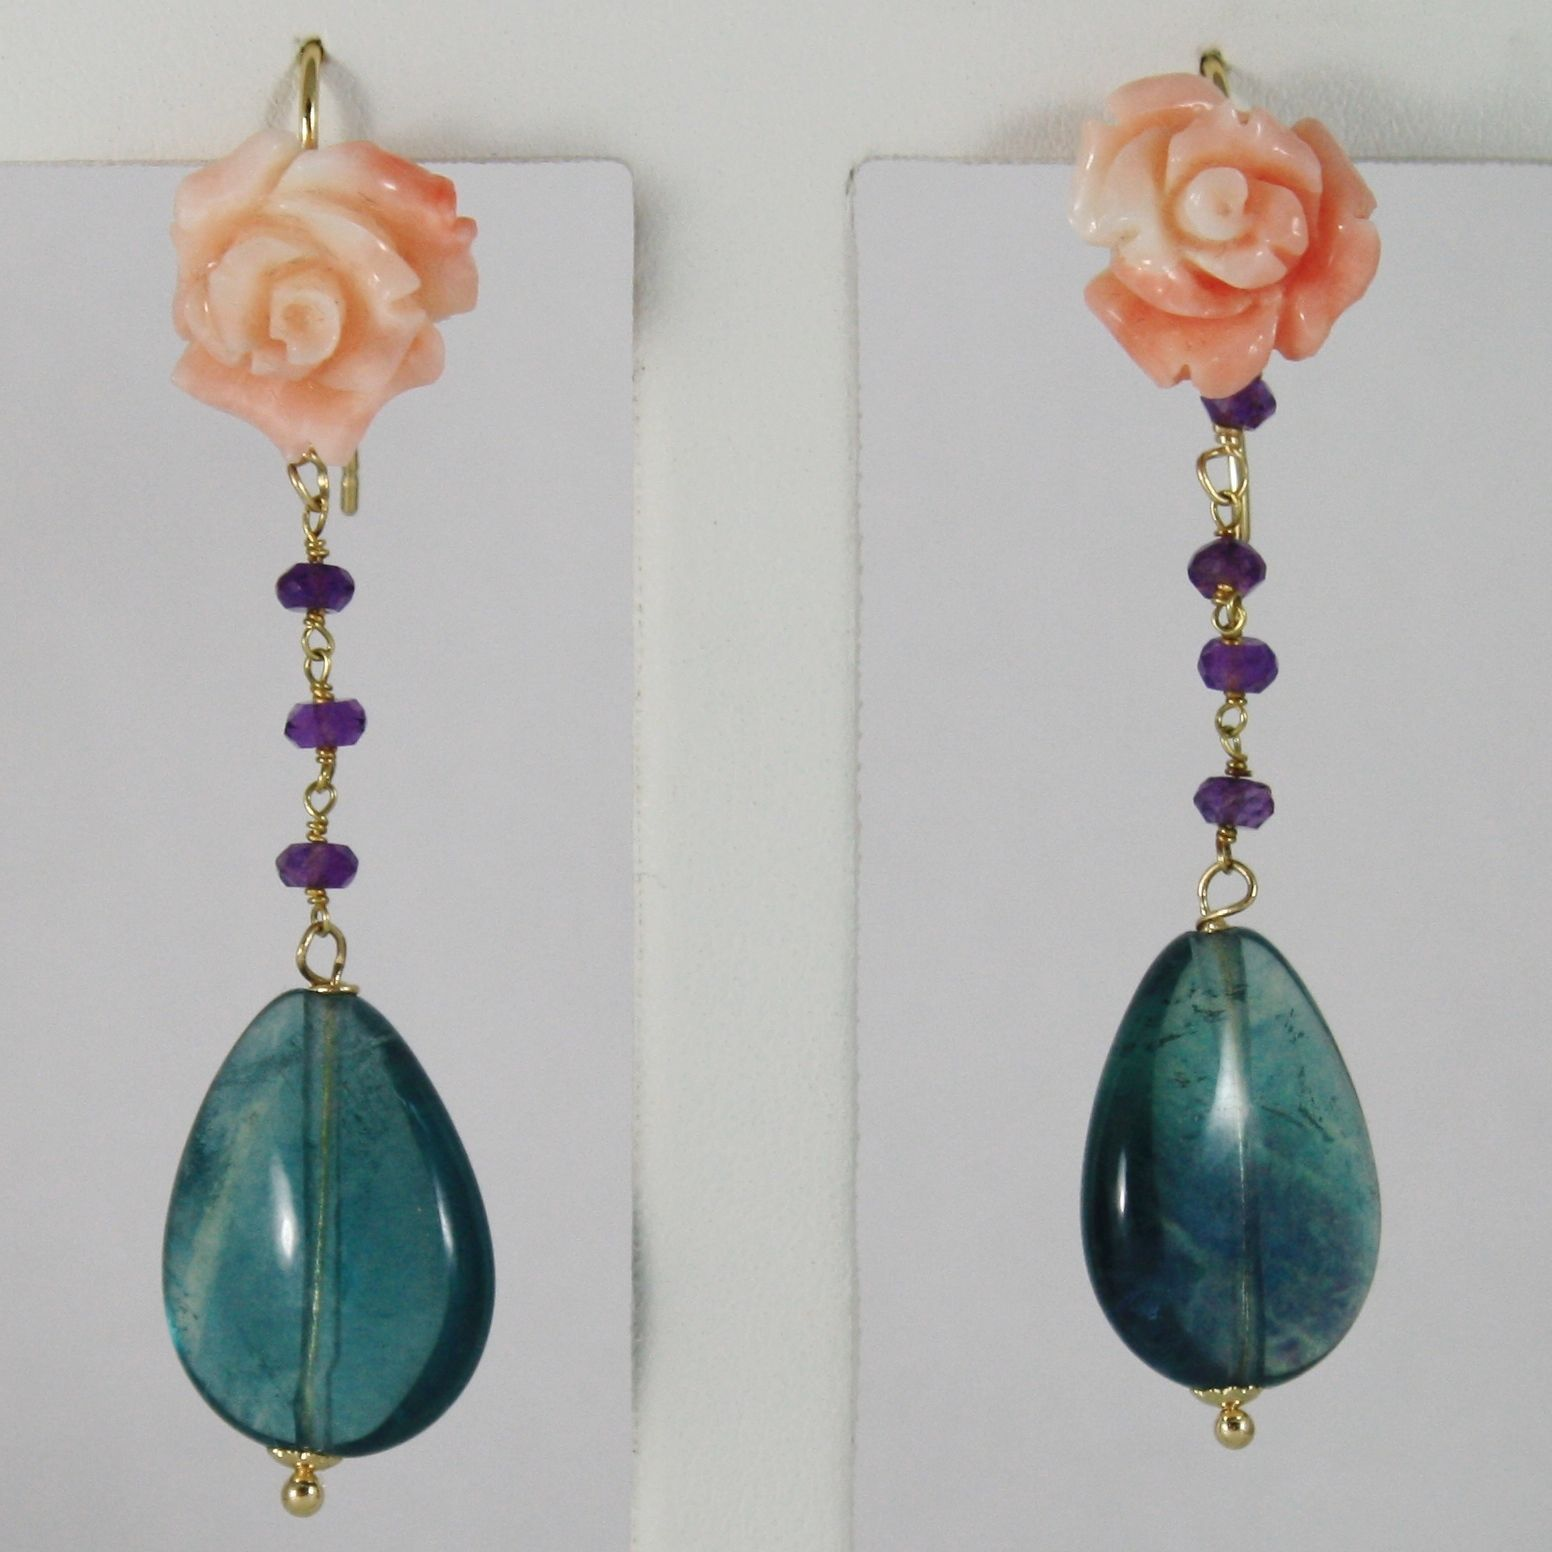 18K YELLOW GOLD PENDANT EARRINGS WITH PINK CORAL ROSE FLOWER, FLUORITE AMETHYST